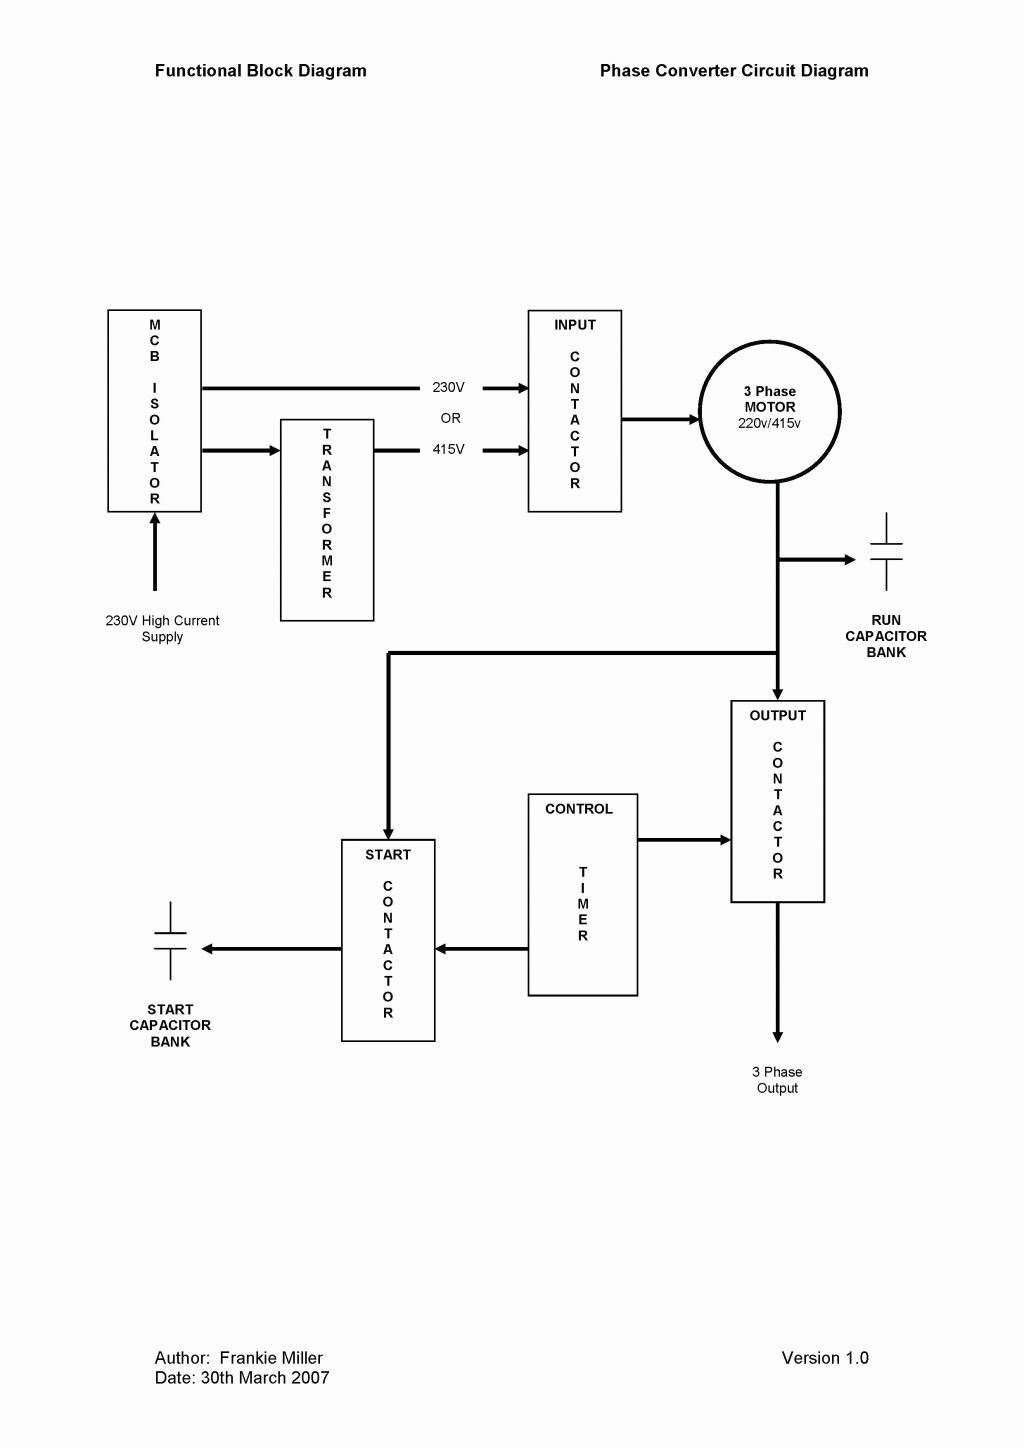 ronk phase converter wiring diagram Collection-220v Wiring Diagram Elegant Ronk Phase Converter Wiring Diagram Mapiraj 9-g